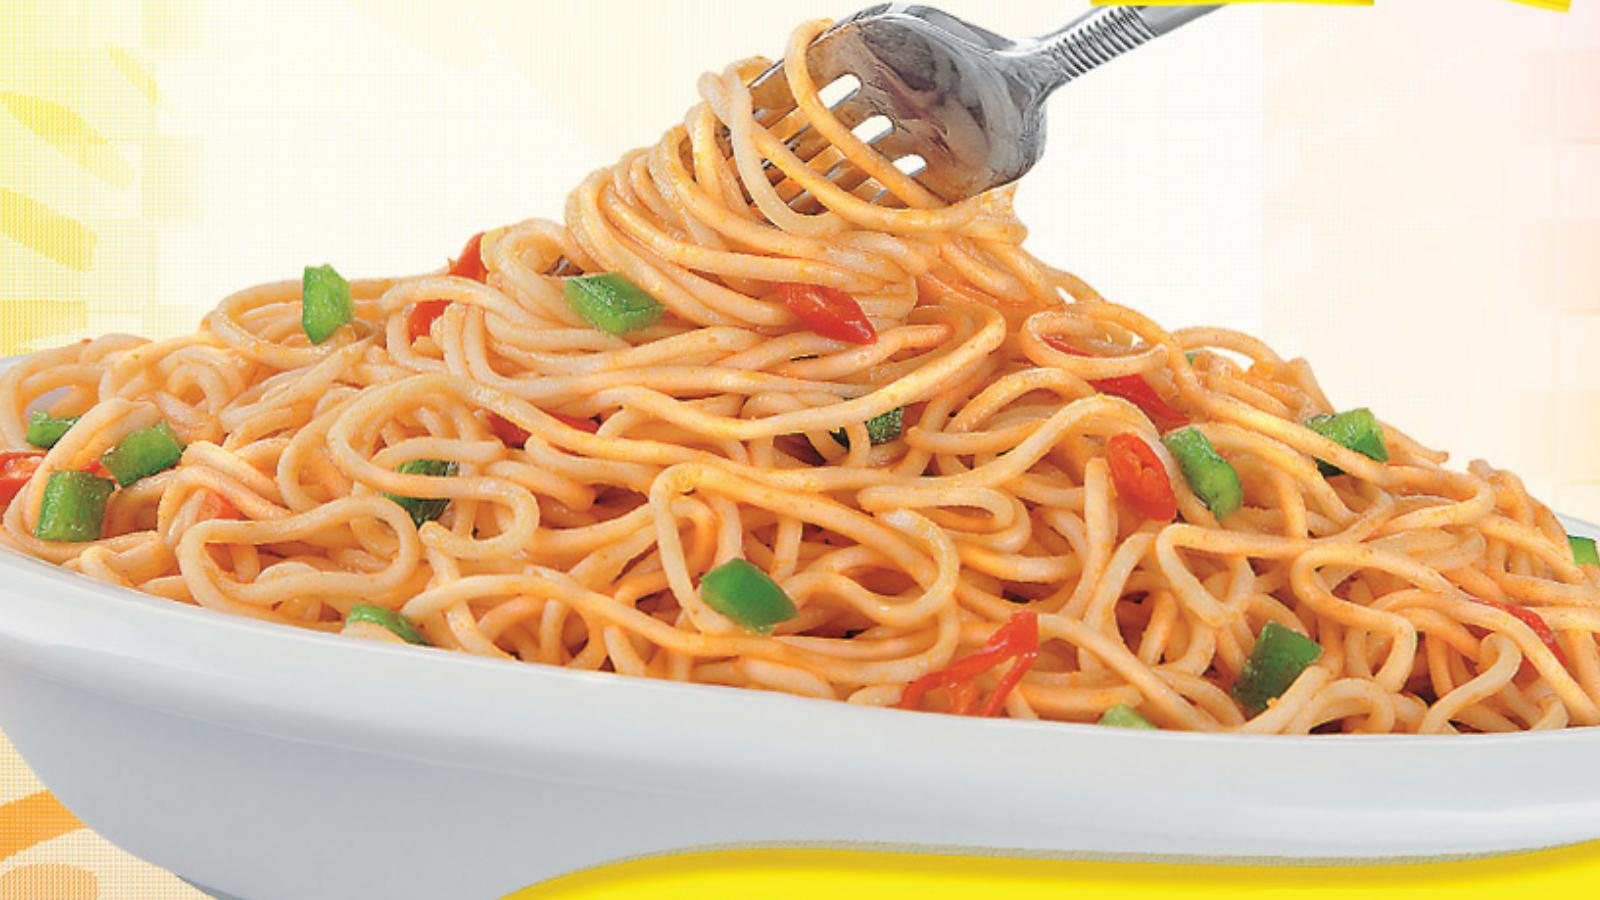 Reliance Retail removes 11 instant noodles from stores